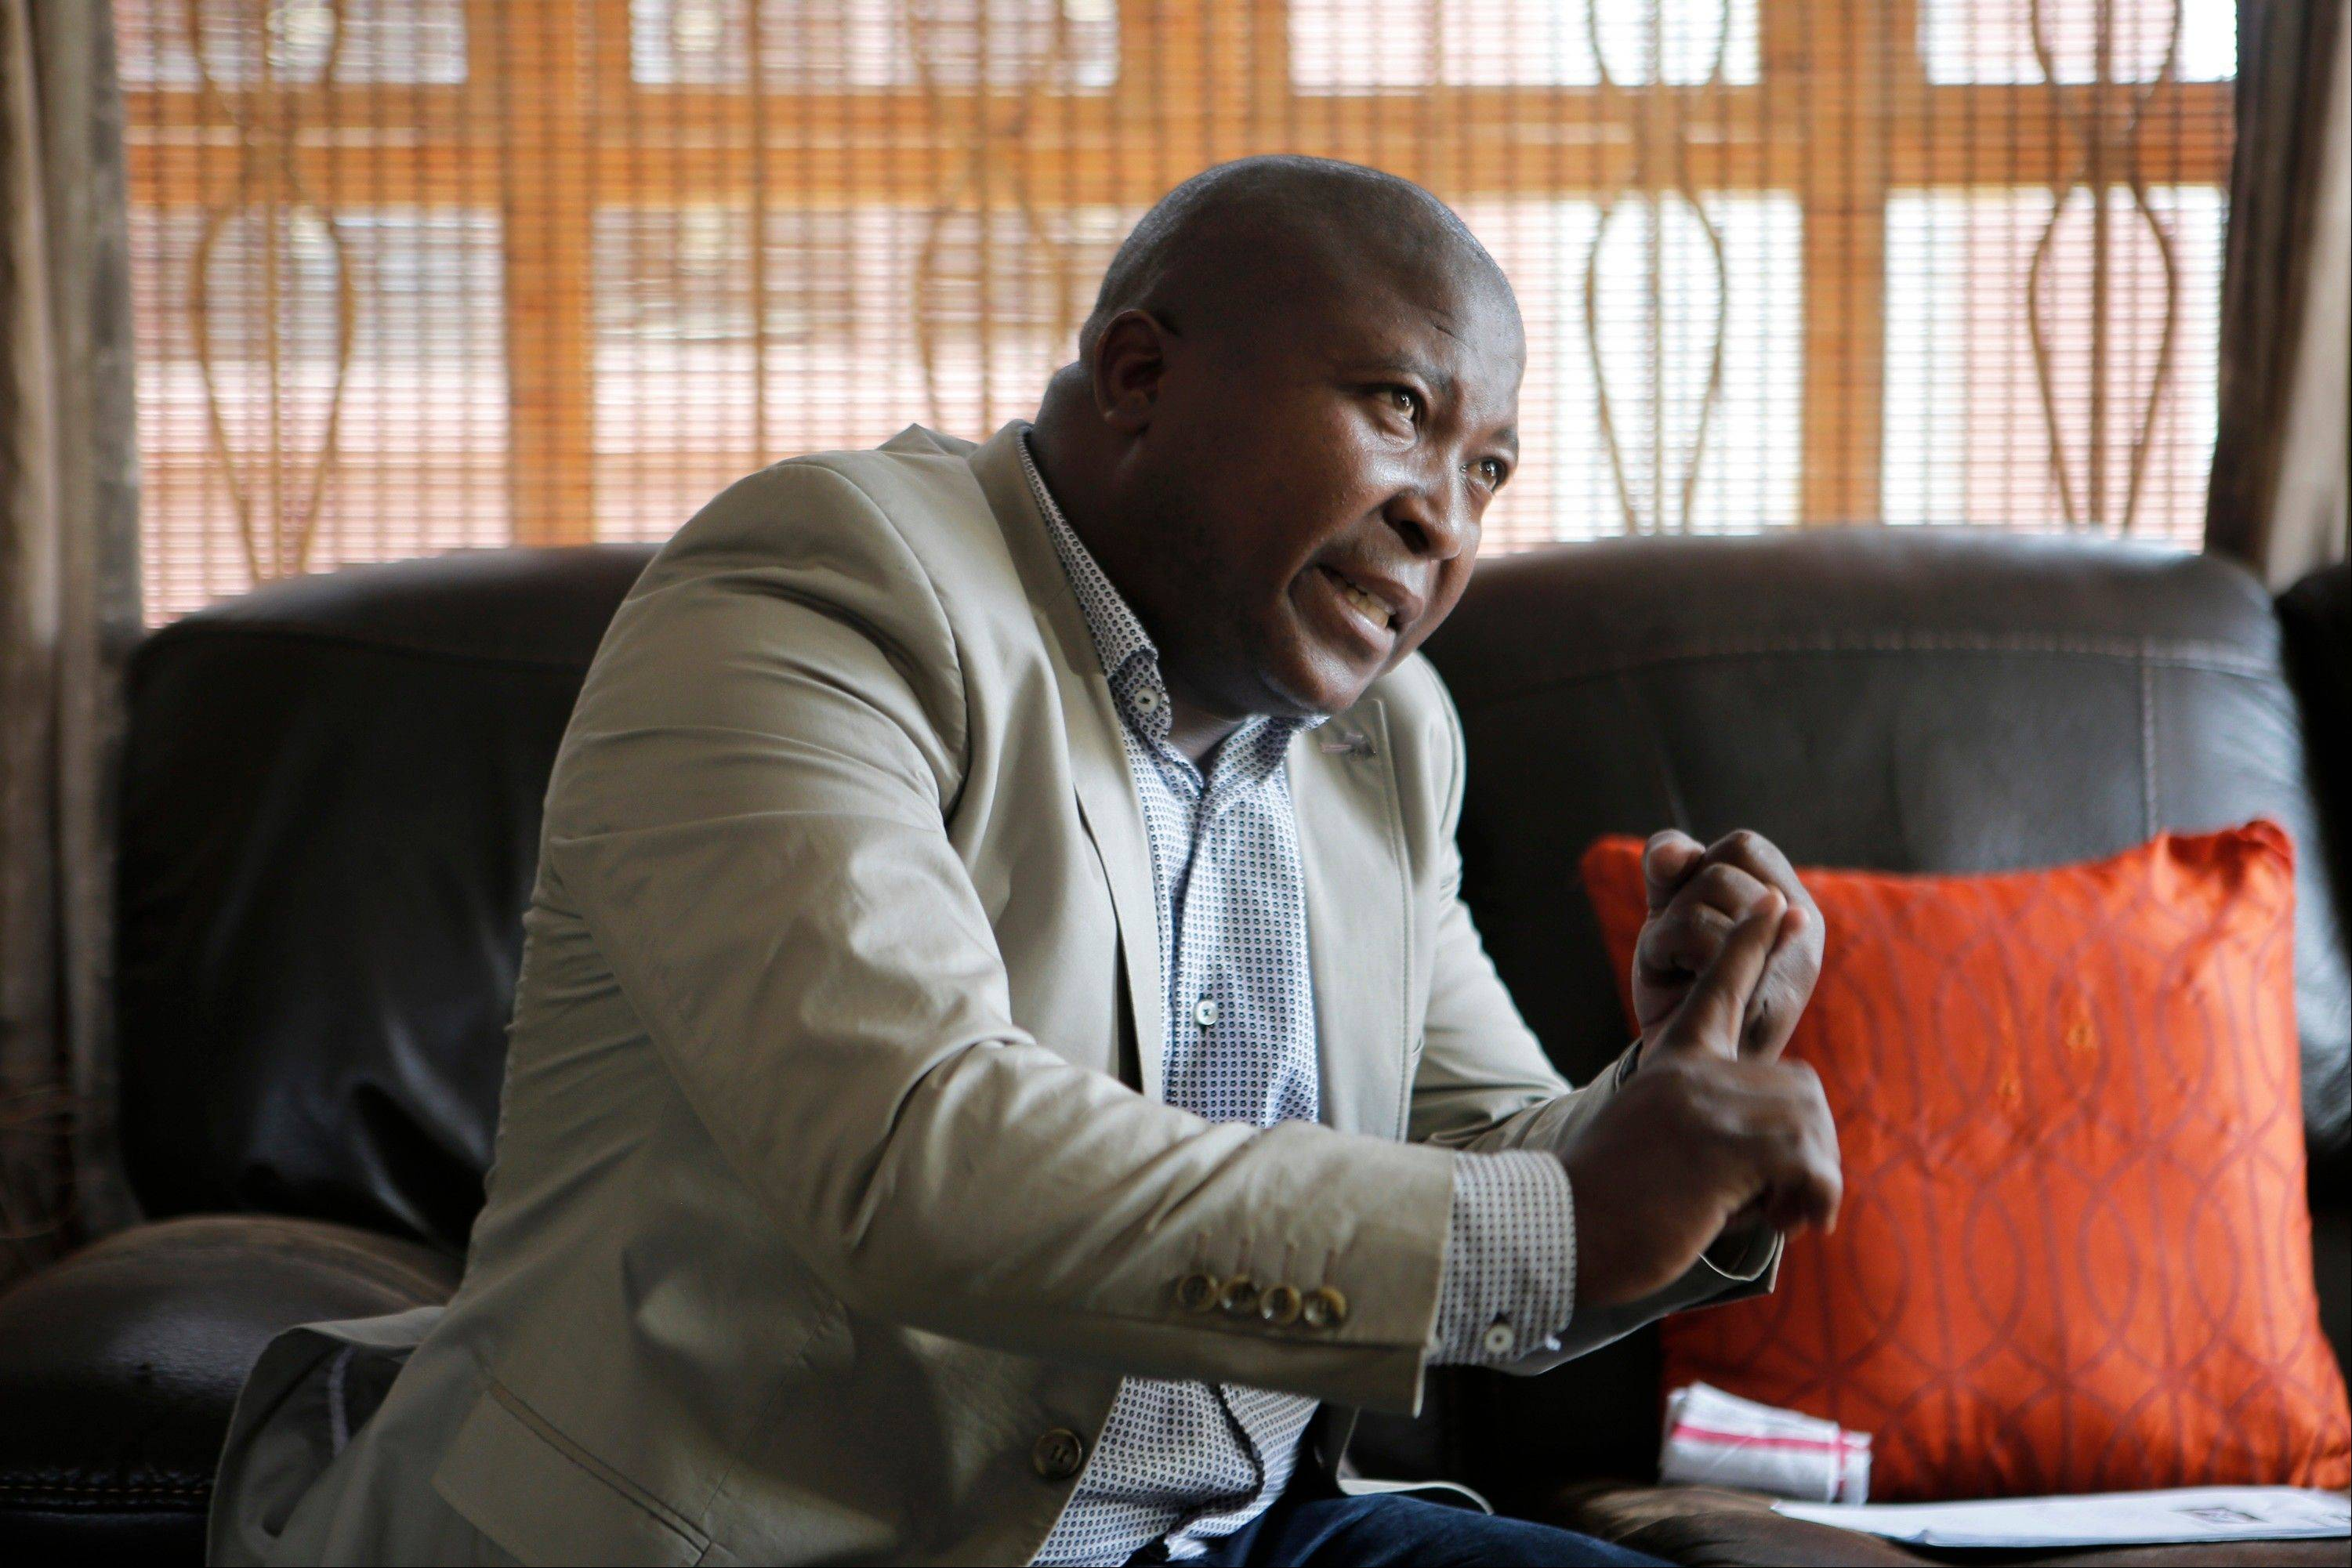 Thamsanqa Jantjie gestures at his home during an interview with The Associated Press in Johannesburg, South Africa, Thursday, Dec. 12, 2013. Jantjie, the man accused of faking sign interpretation next to world leaders at Nelson Mandela�s memorial, told a local newspaper that he was hallucinating and hearing voices.